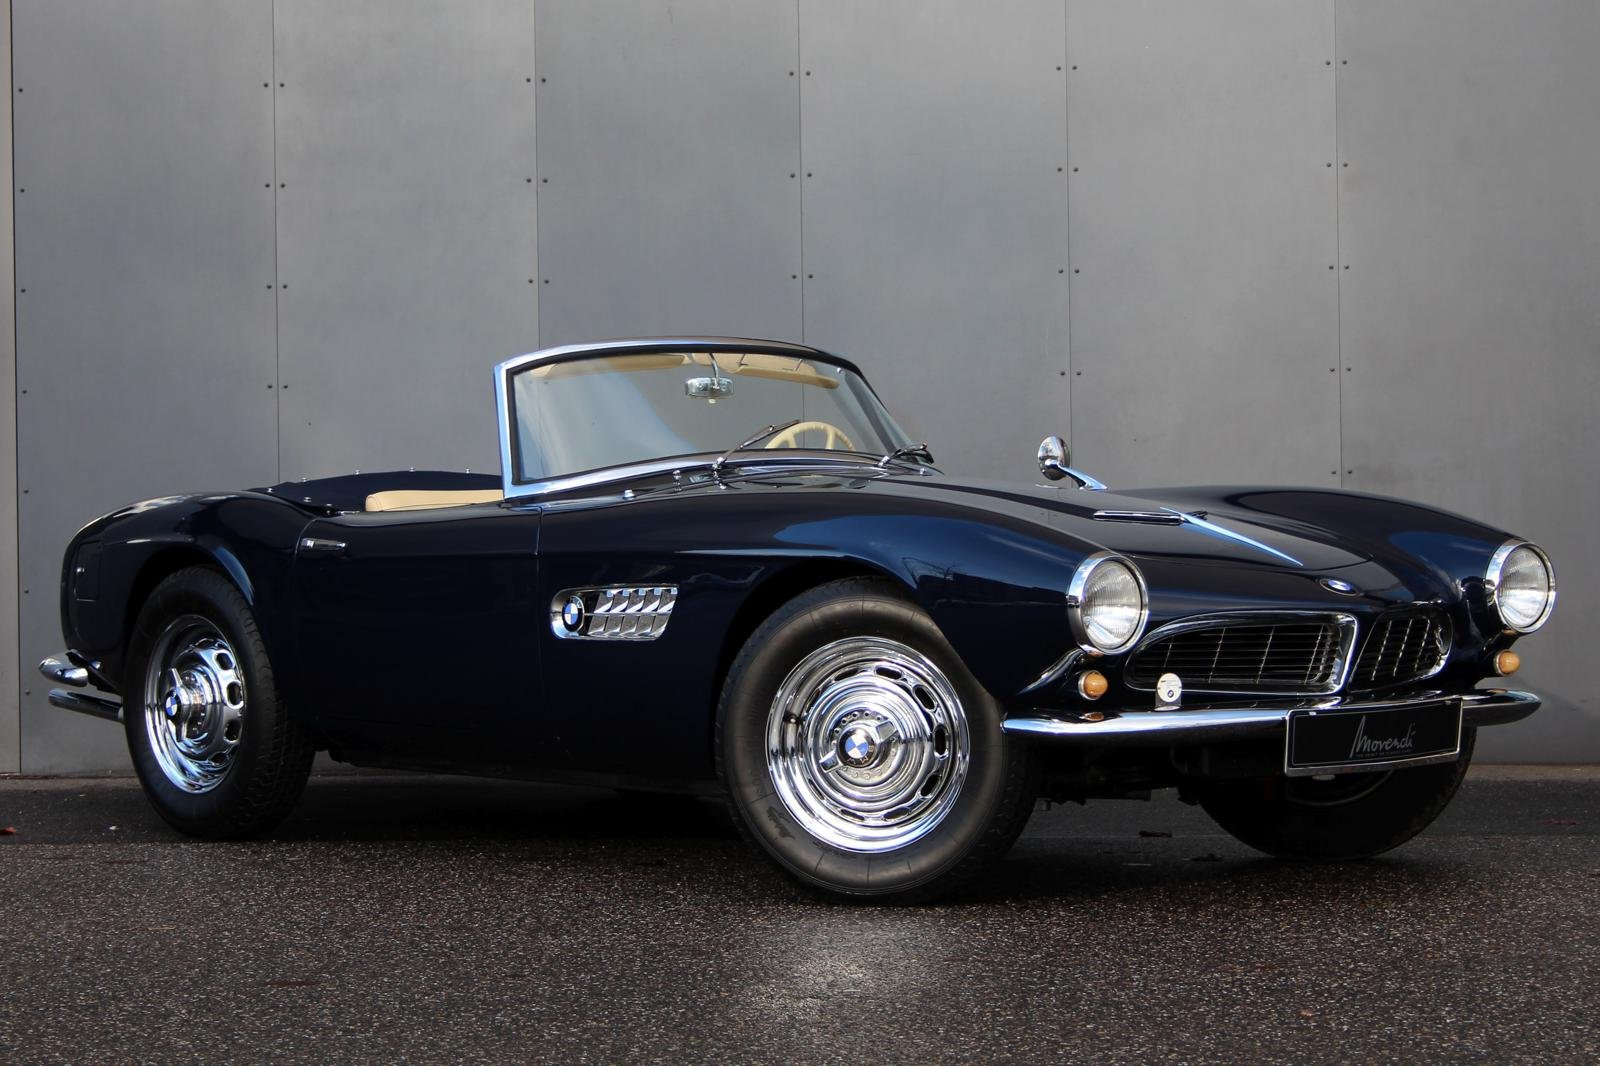 1959 BMW 507 Serie II LHD For Sale (picture 1 of 6)